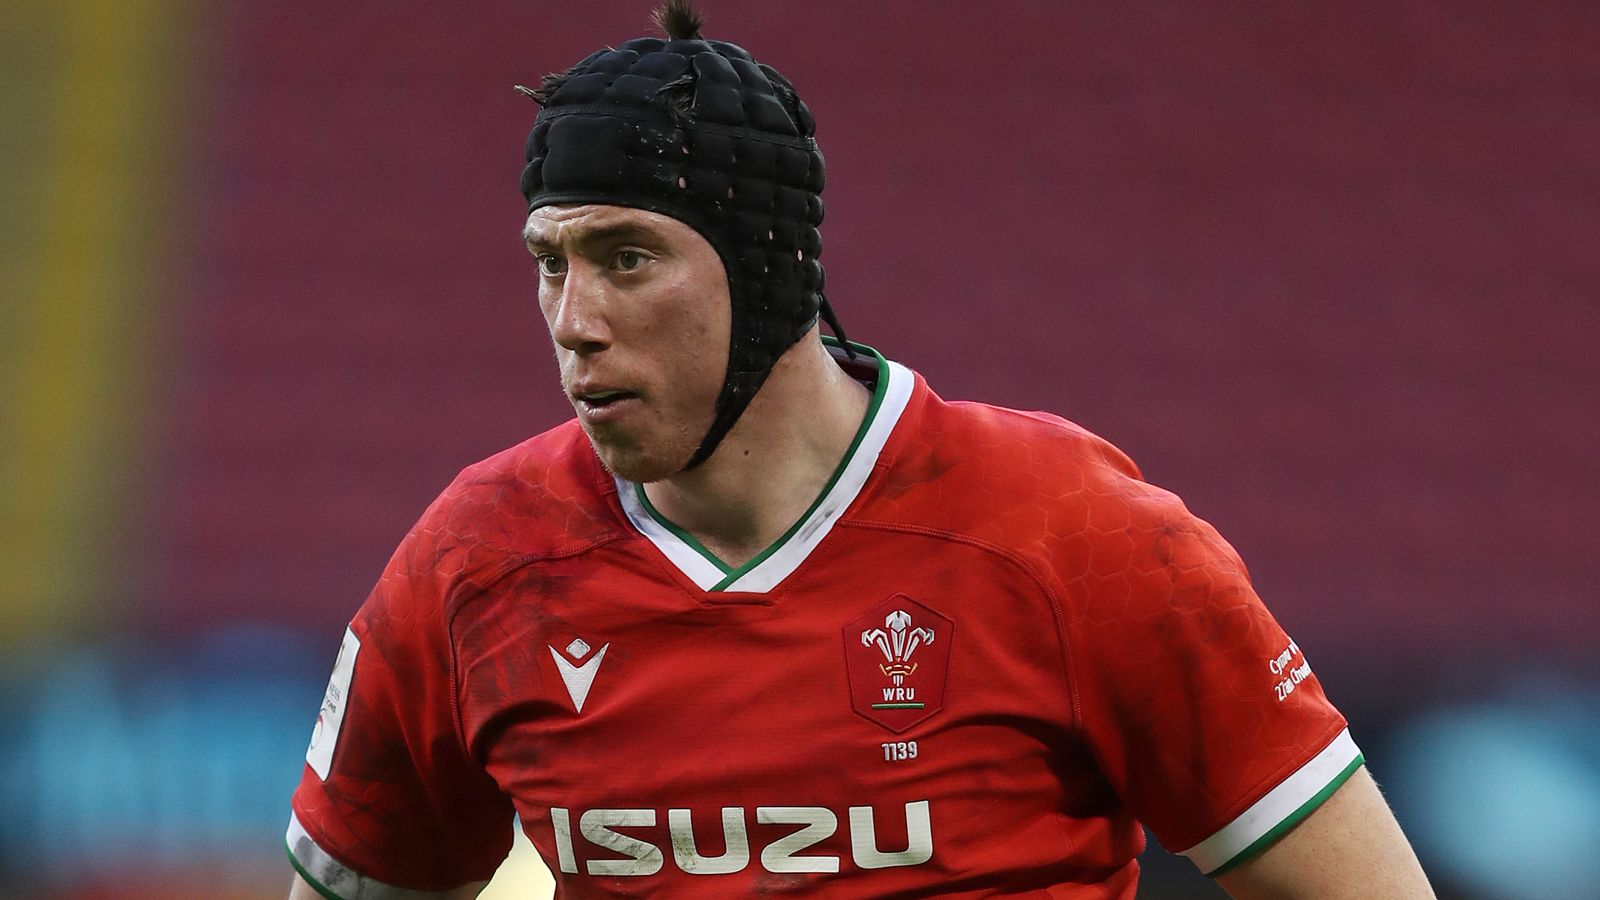 Adam Beard in for Cory Hill in Wales' only change to starting XV vs France for Paris Six Nations Test